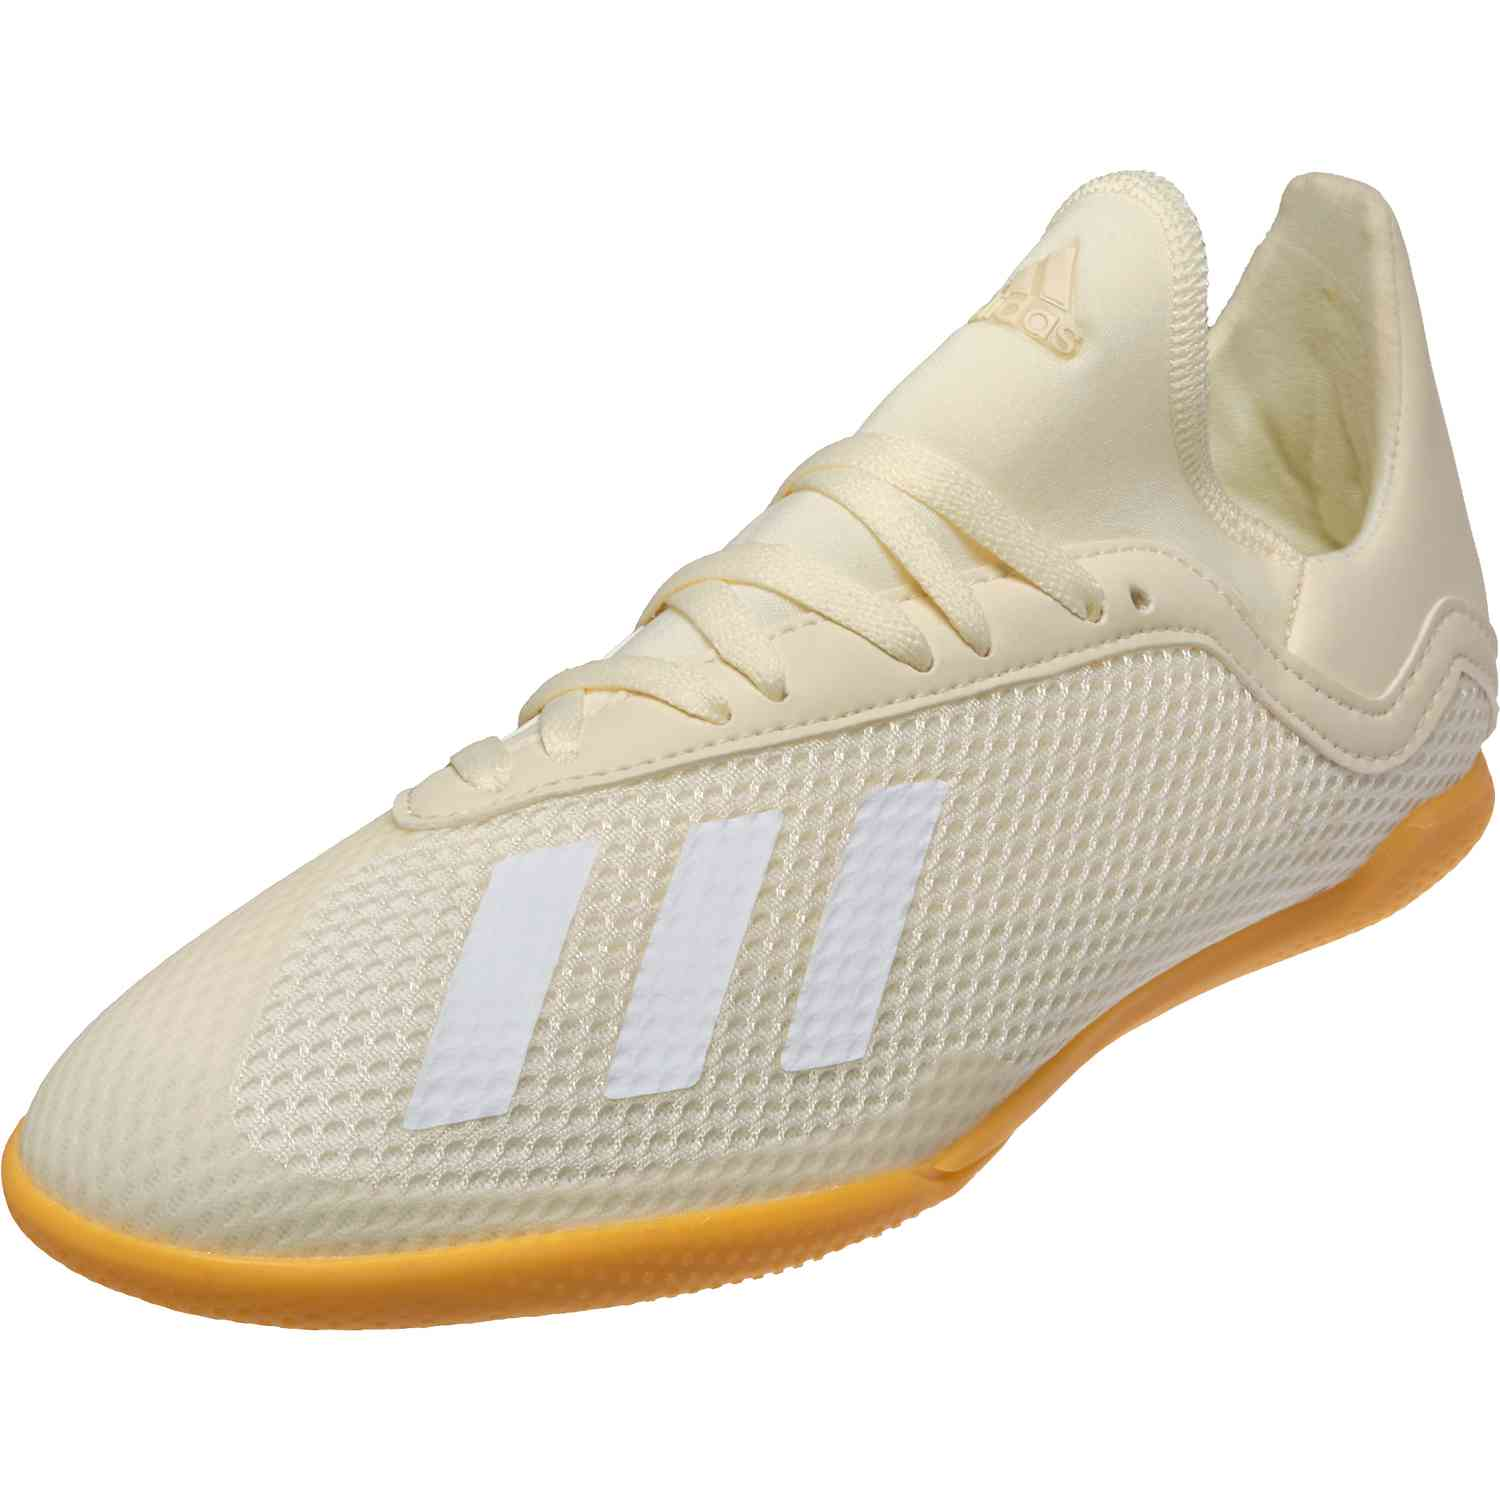 215699f6b adidas X Tango 18.3 IN - Youth - Off White/White/Black - SoccerPro